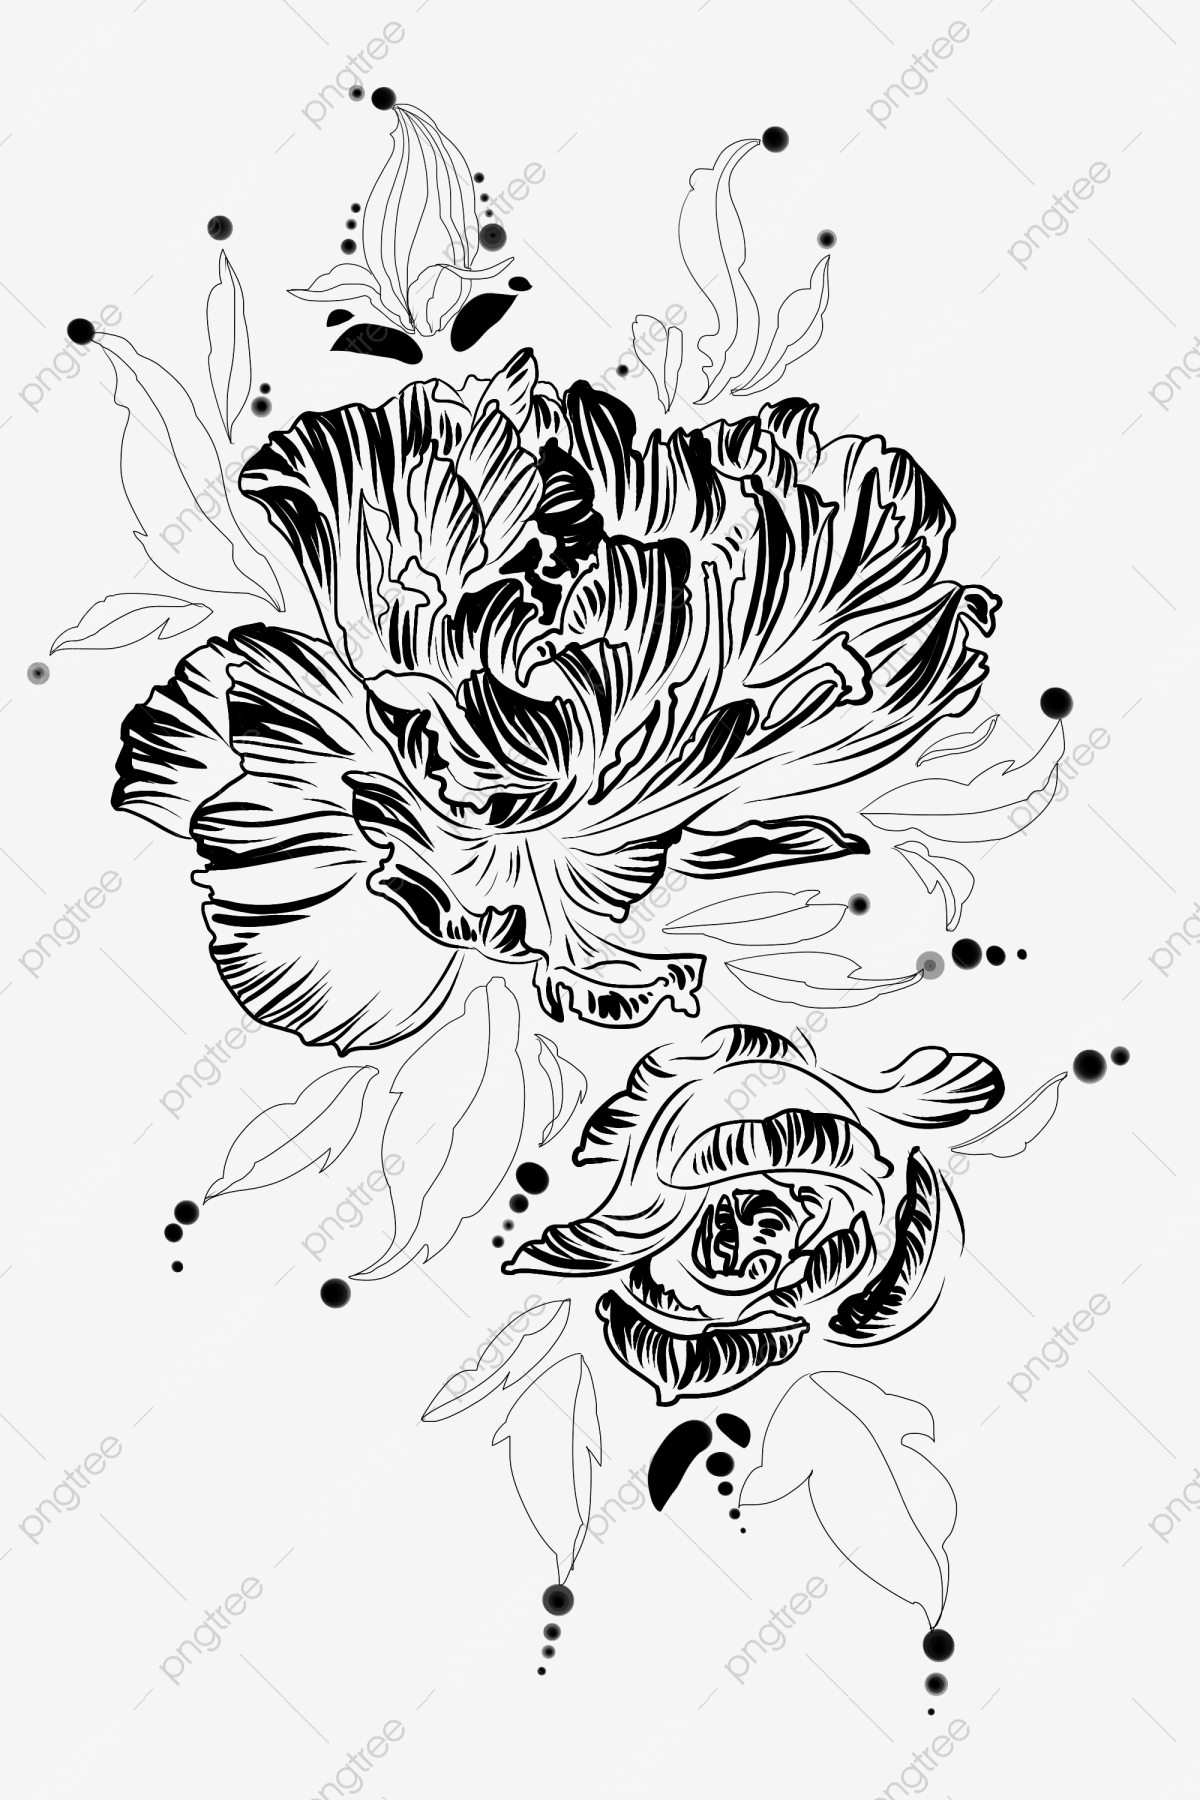 Belle Fleur Fleur Noir Et Blanc Dessin Au Trait Illustration